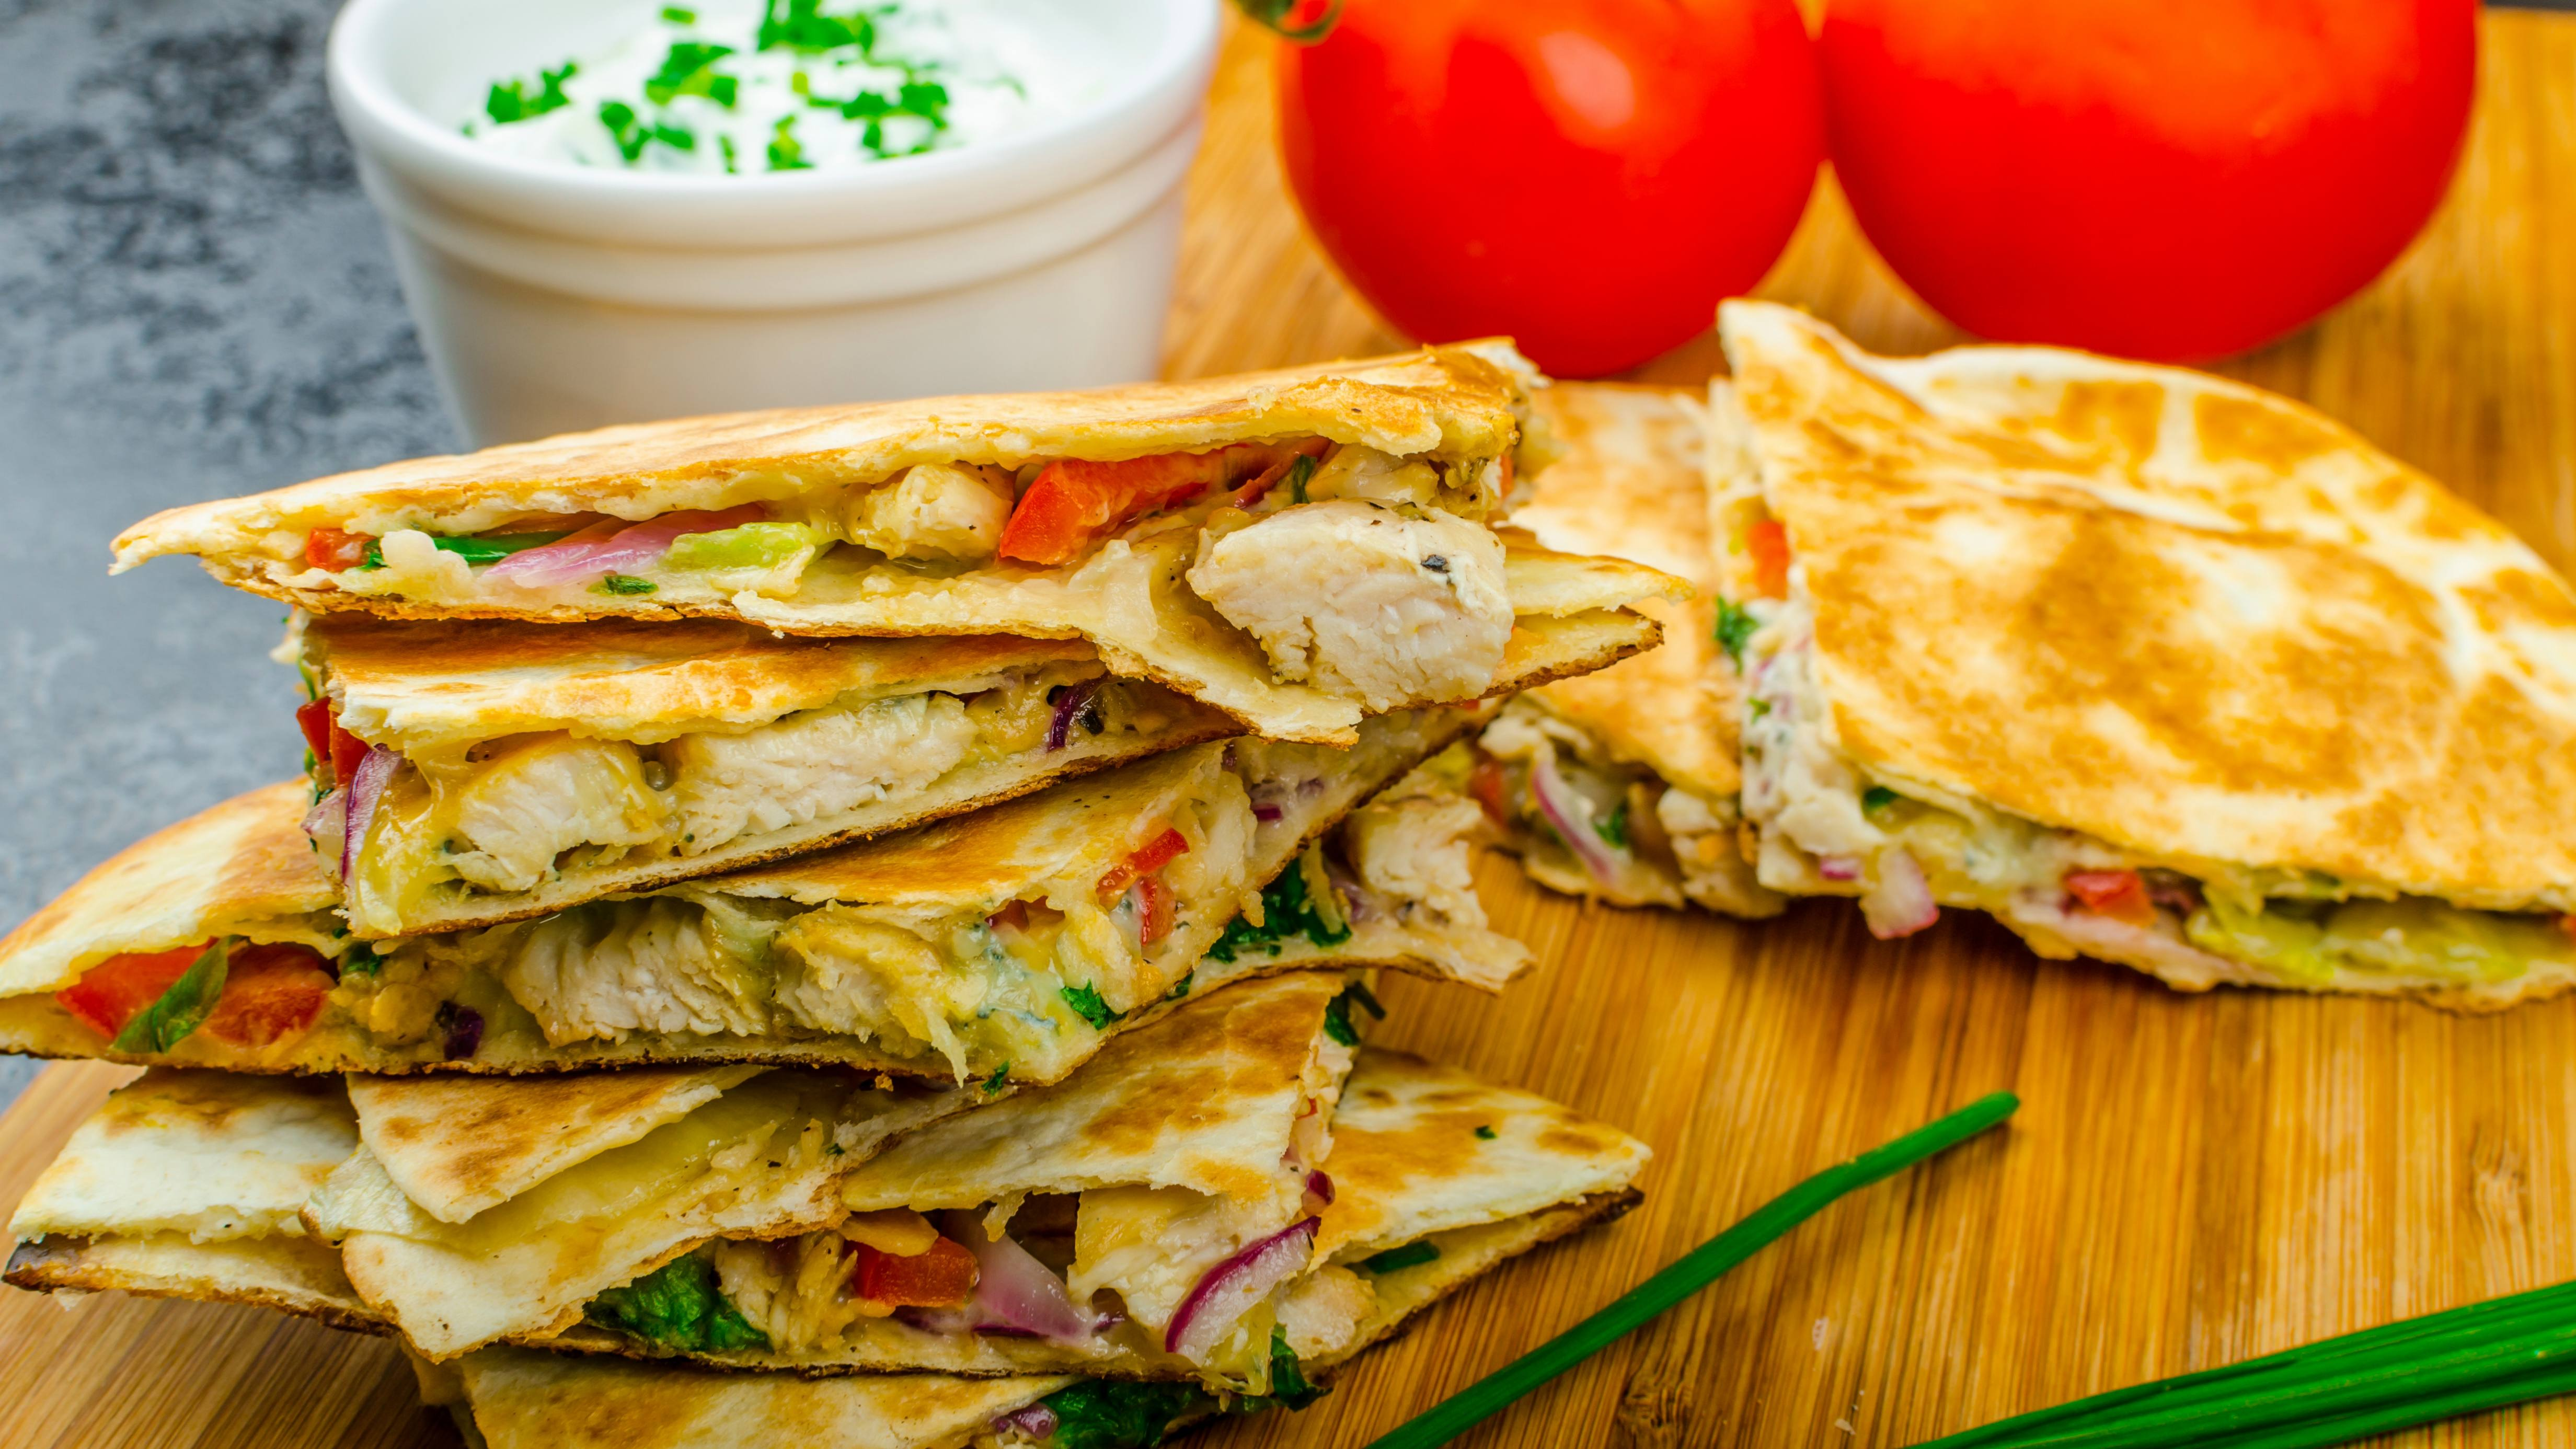 a chicken and vegetable quesadilla on a wooden plank